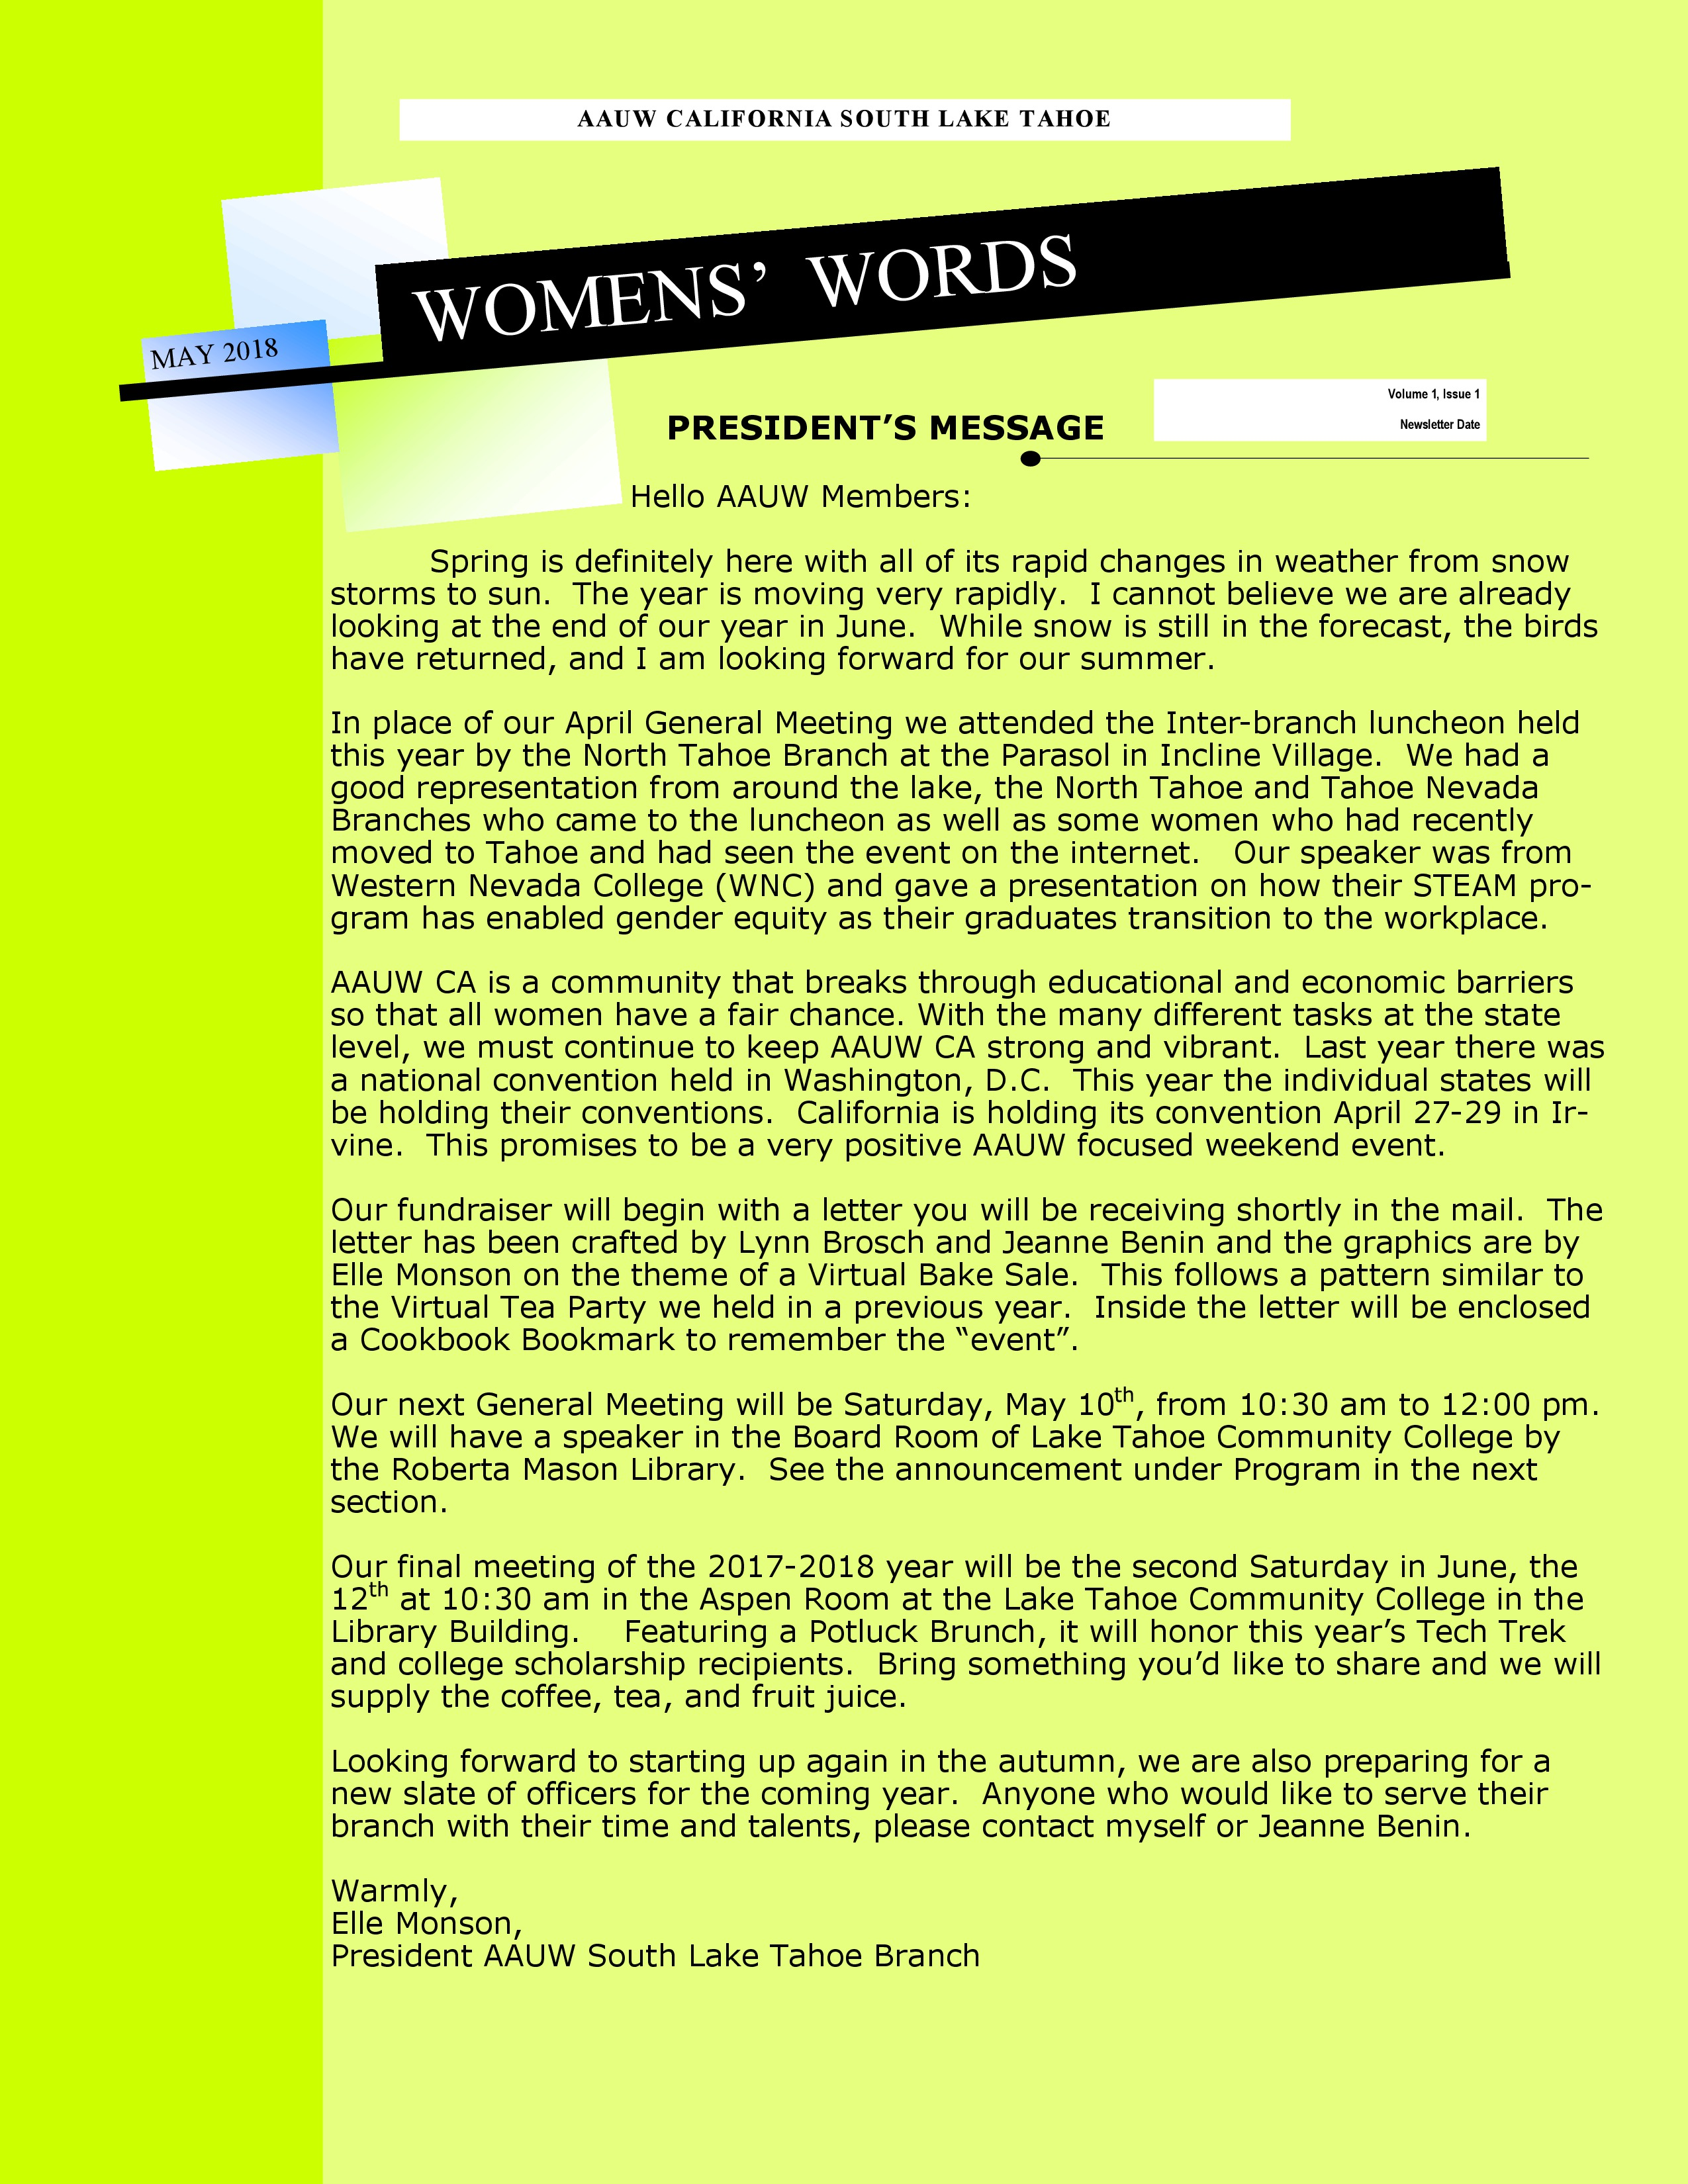 AAUW President's Message | South Lake Tahoe (CA) Branch